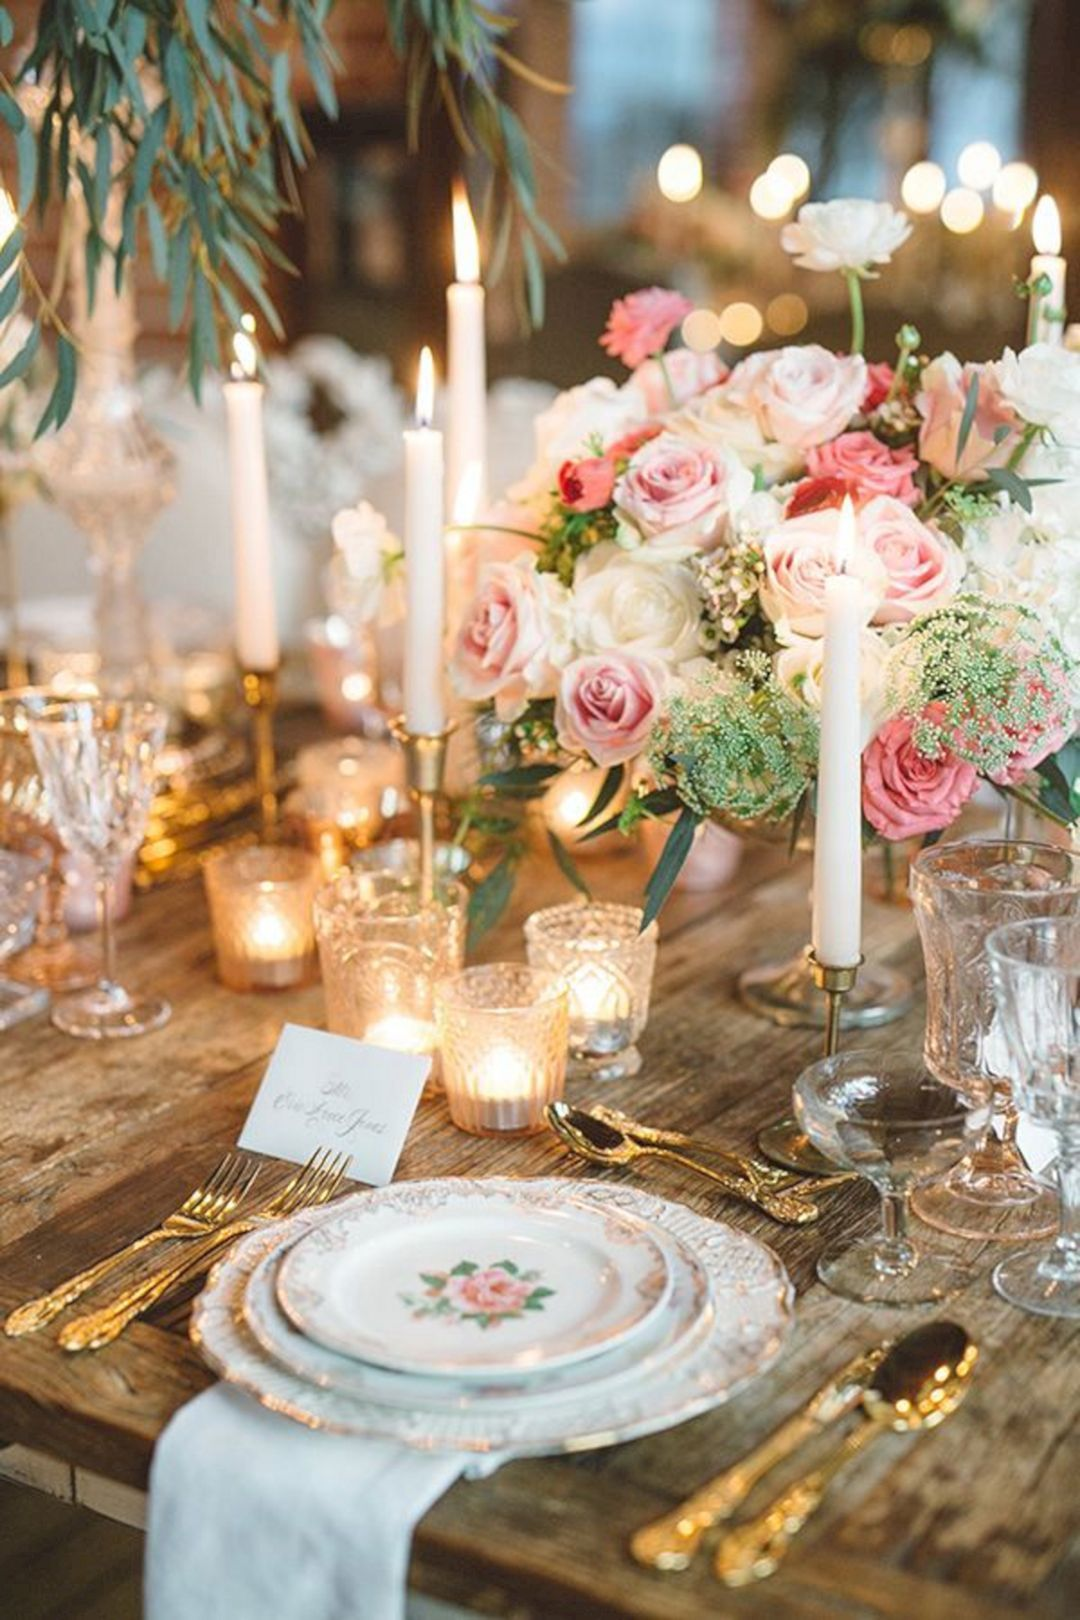 Vintage #Romantic #WeddingDecor #TableSetting #candles | Vintage glam  wedding, Vintage wedding theme, Wedding table settings